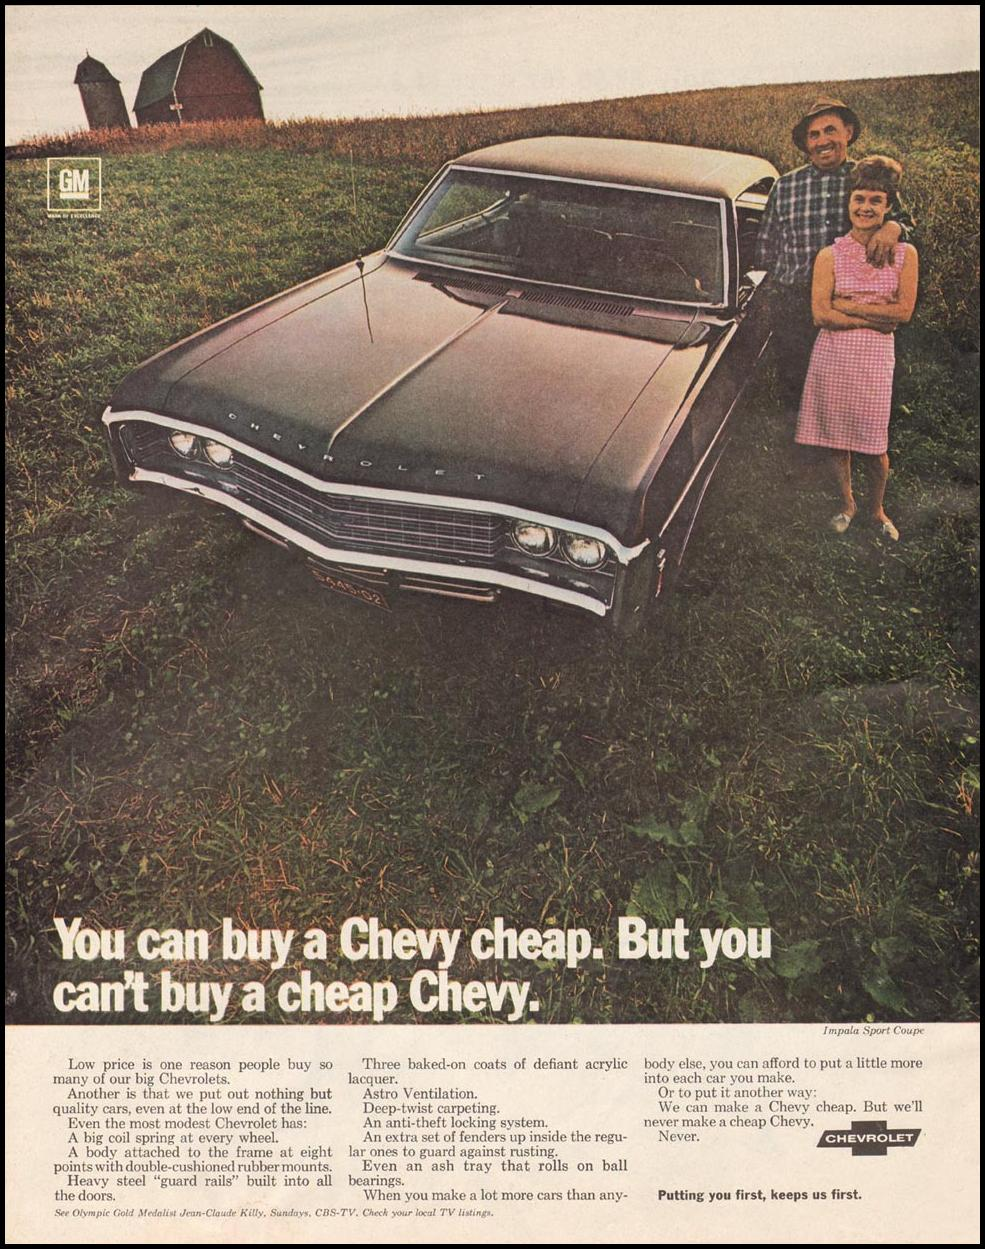 CHEVROLET AUTOMOBILES SATURDAY EVENING POST 02/08/1969 p. 18